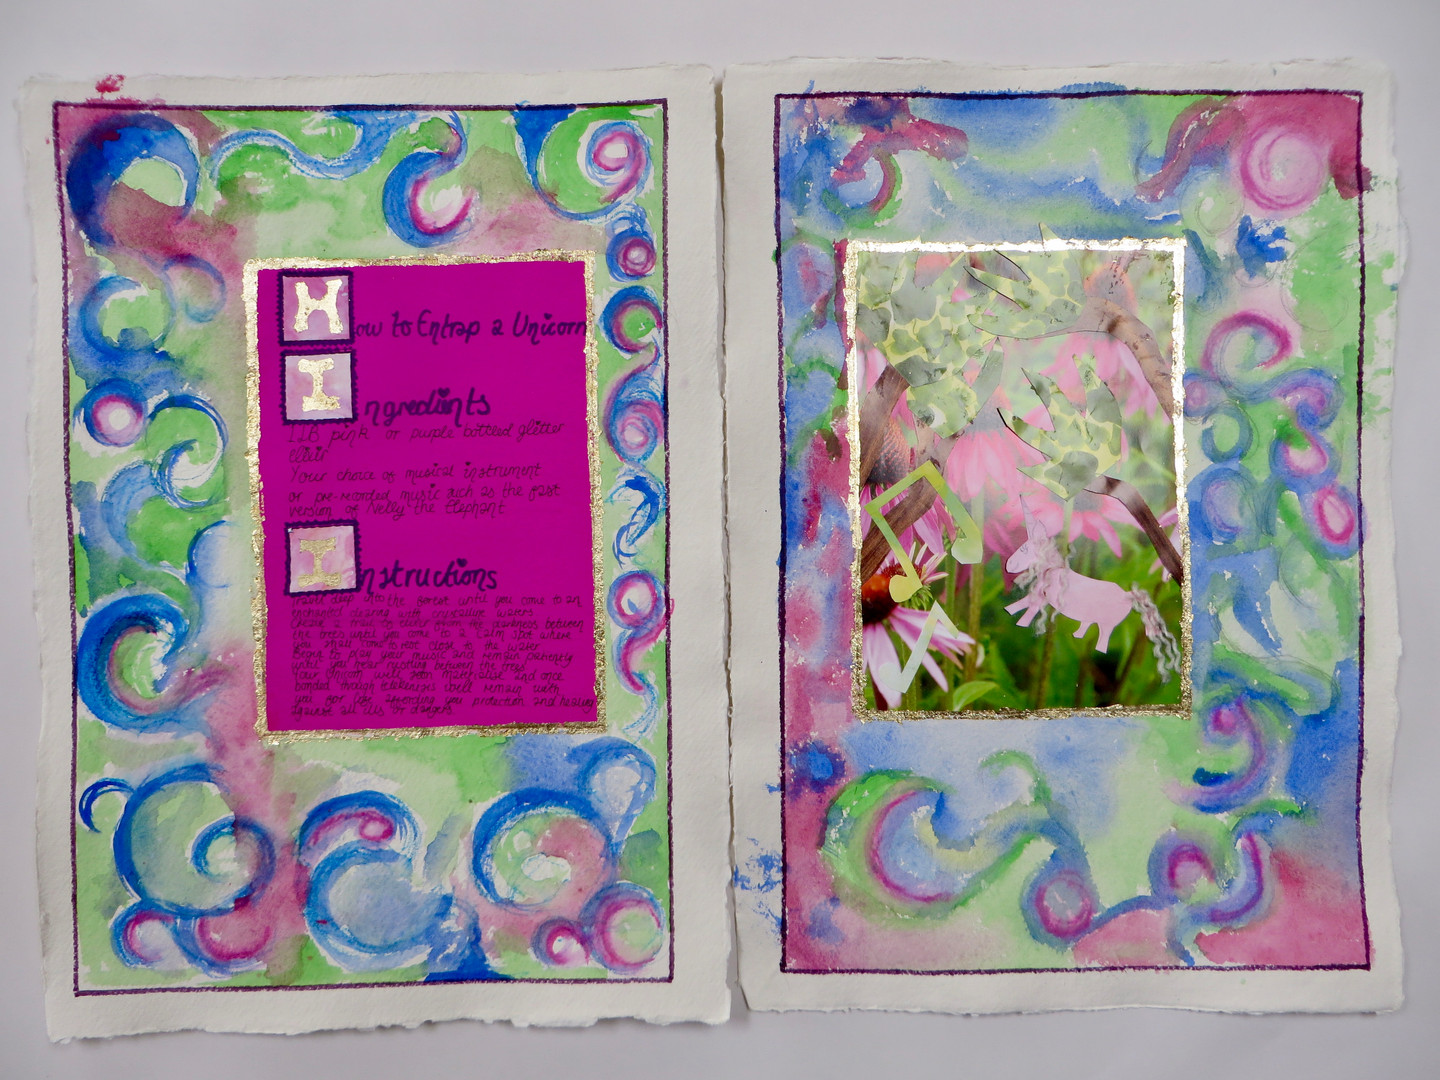 How to Entrap a Unicorn - double page spread